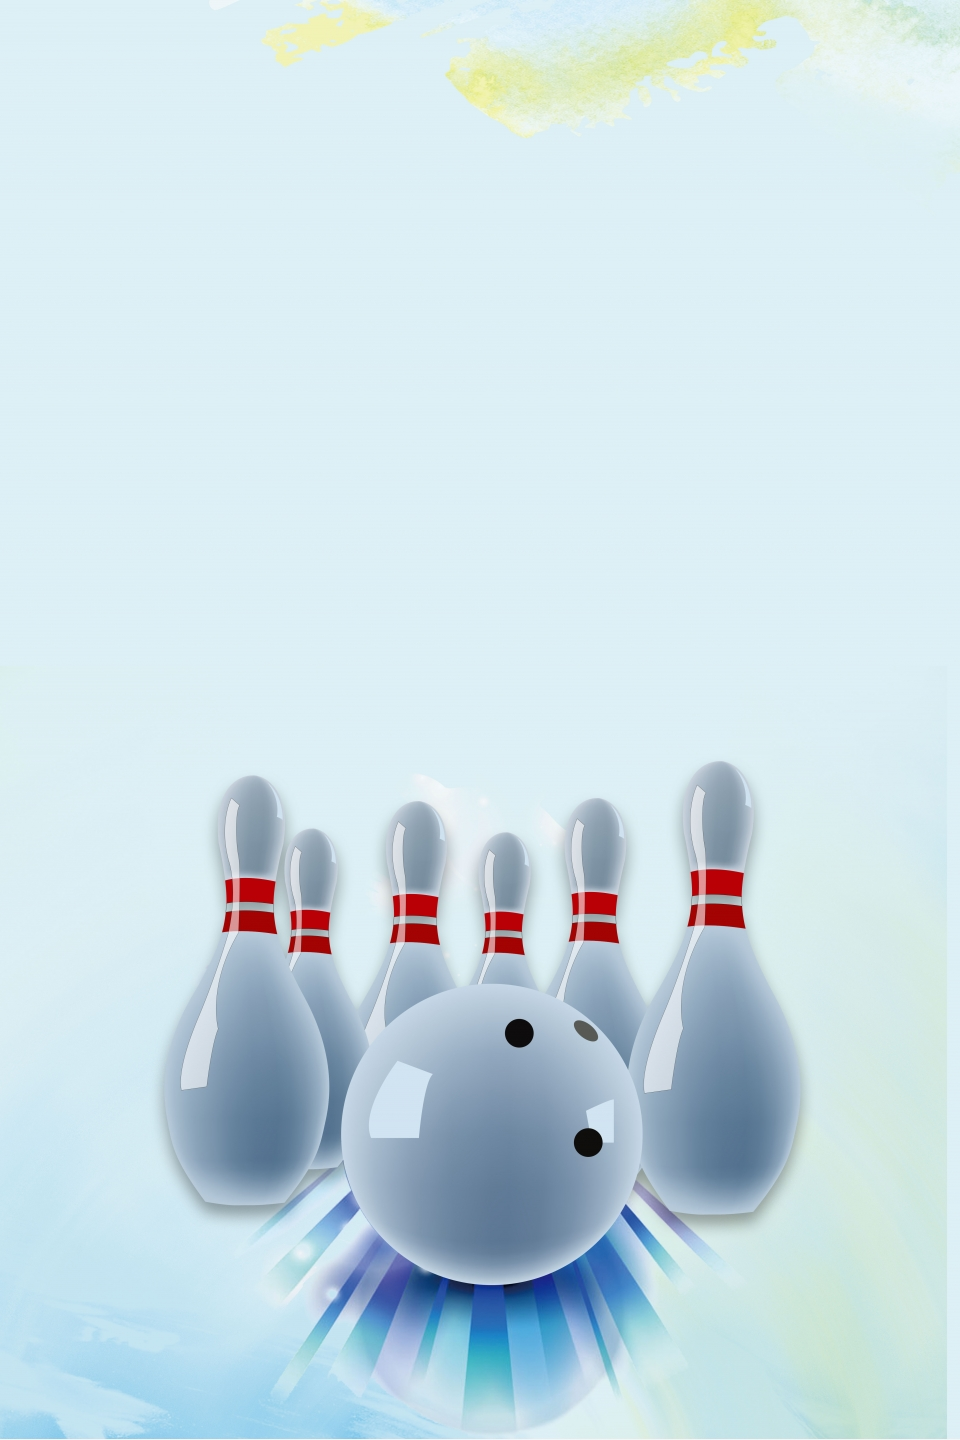 Bowling Alley Poster Background Material Bowling Alley